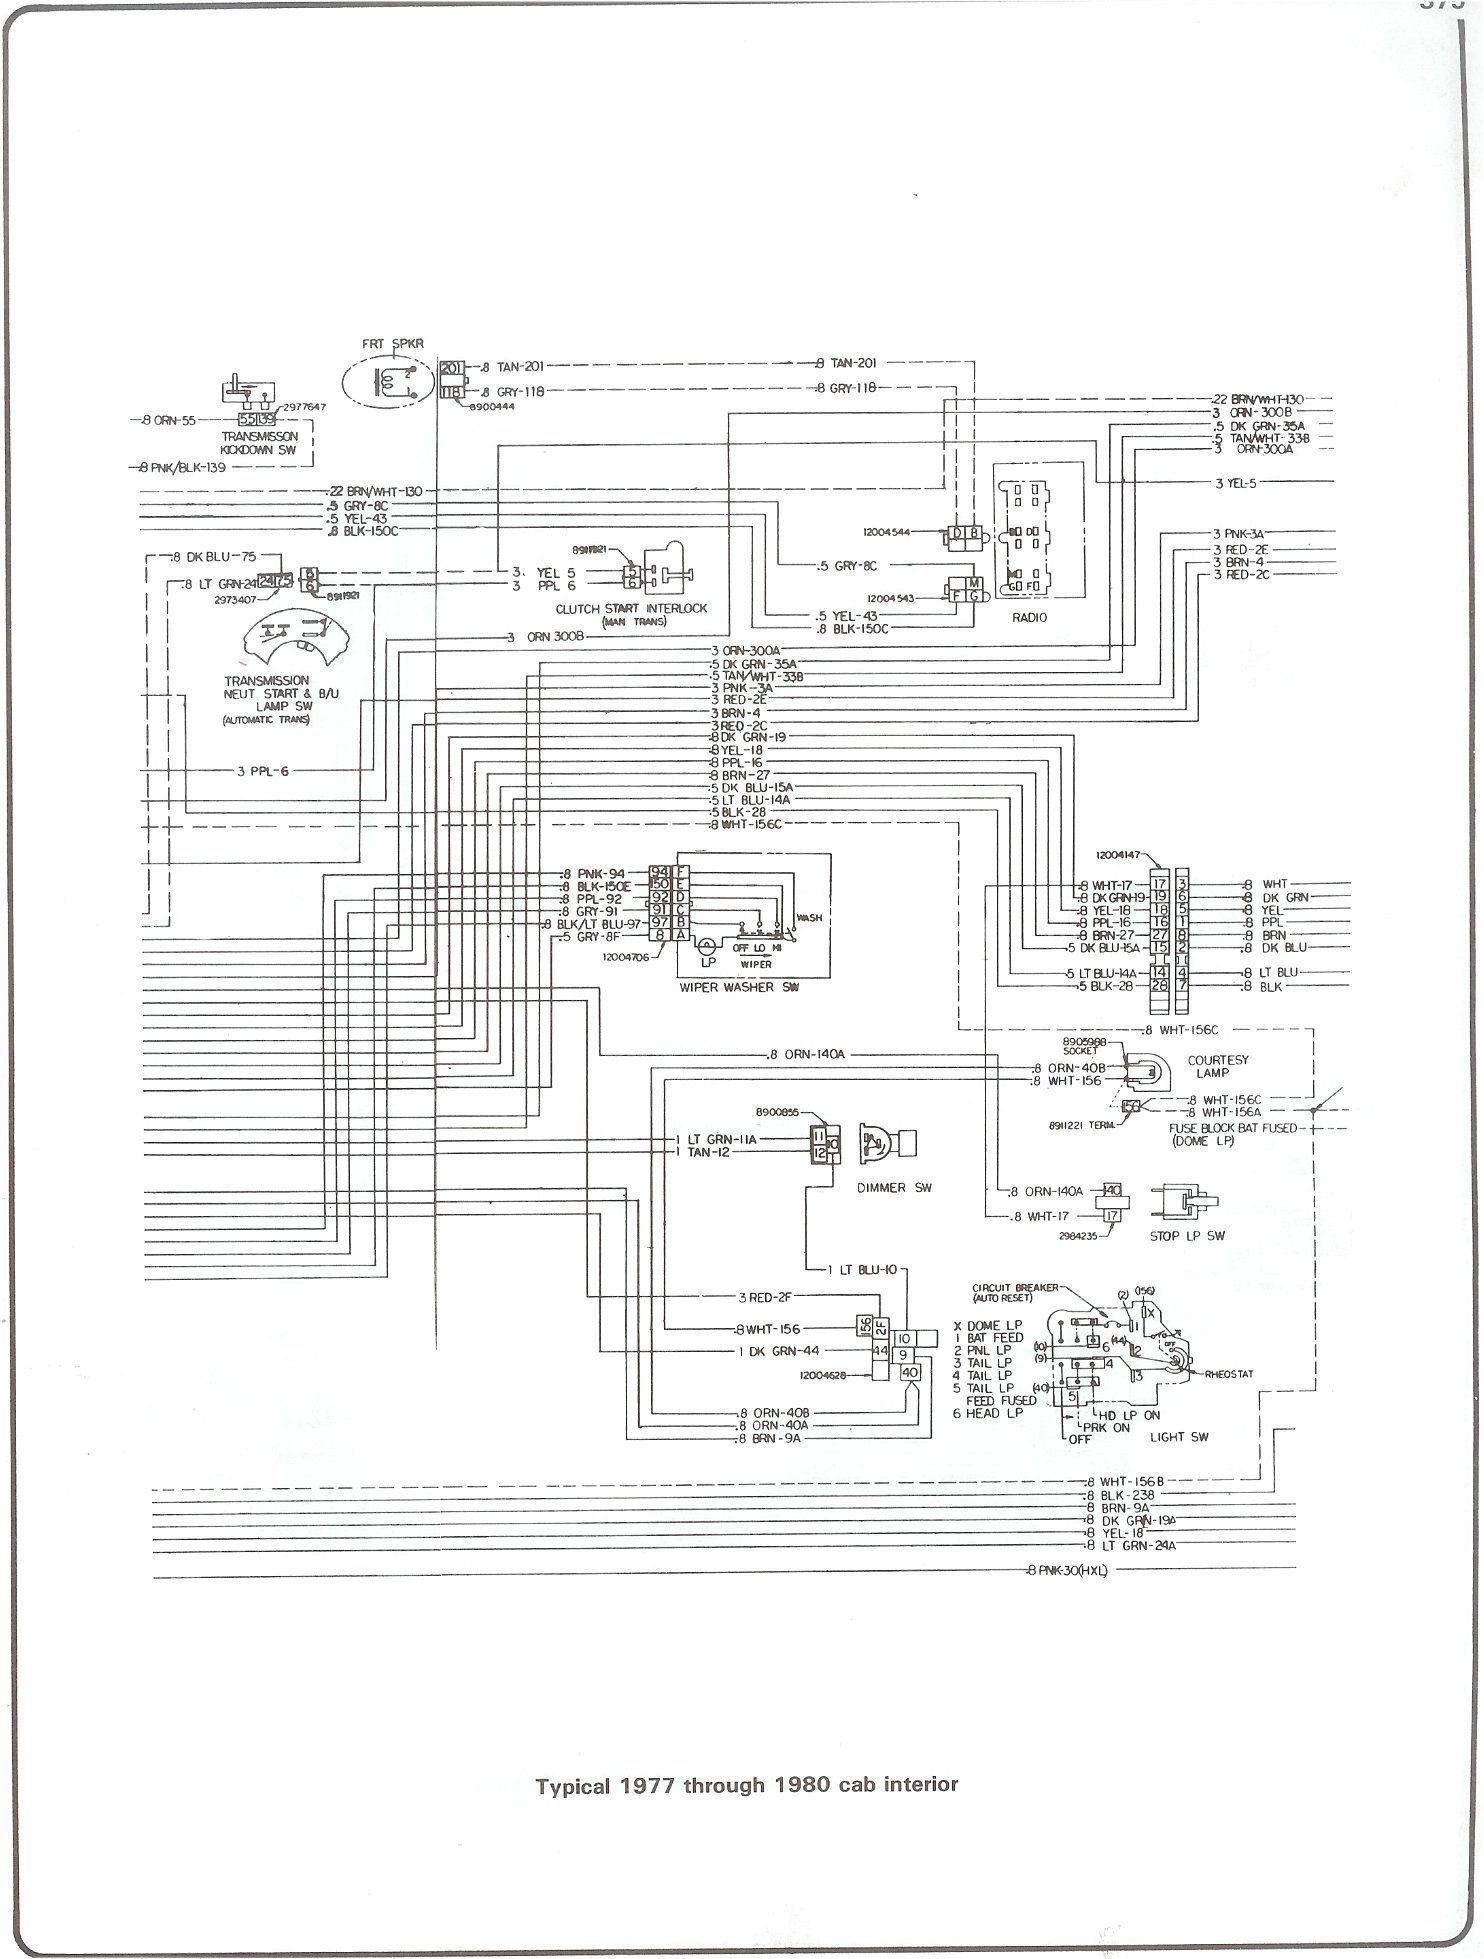 Chevrolet 82 Corvette Alternator Wiring Reveolution Of Gm Single Wire Diagram Complete 73 87 Diagrams Rh Forum 87chevytrucks Com Chevy Info